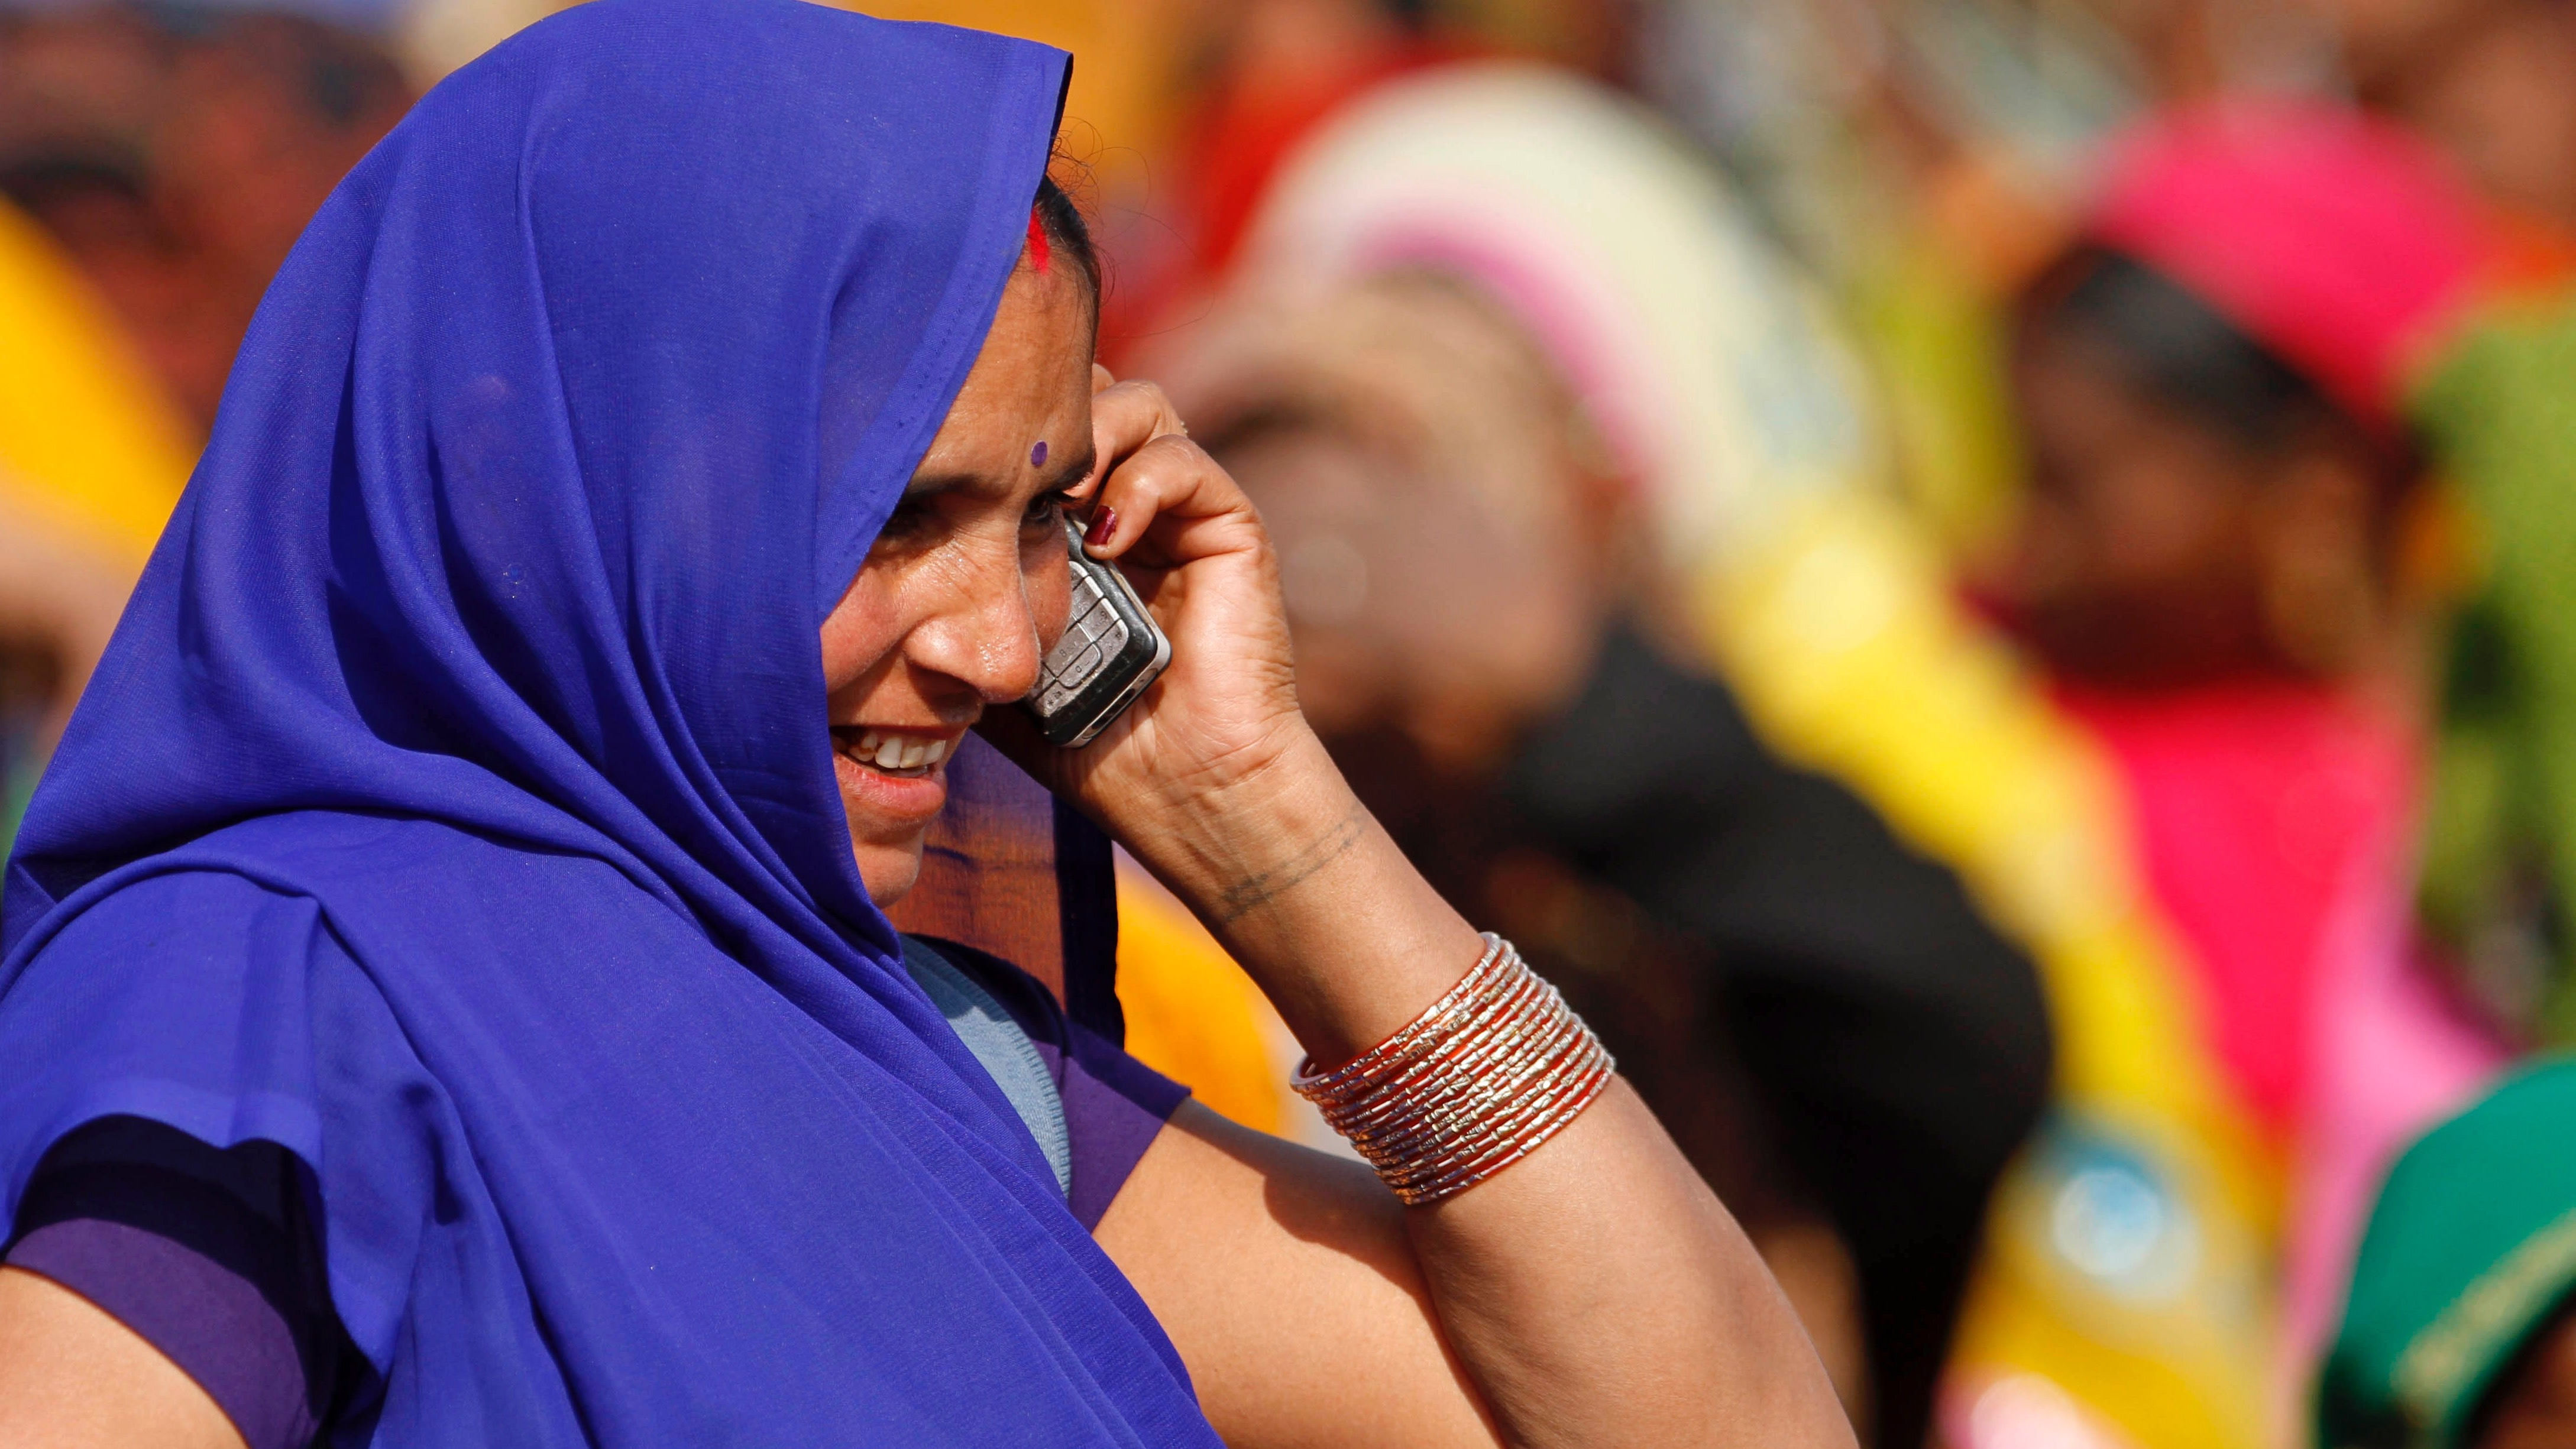 Rural Indian woman on the phone